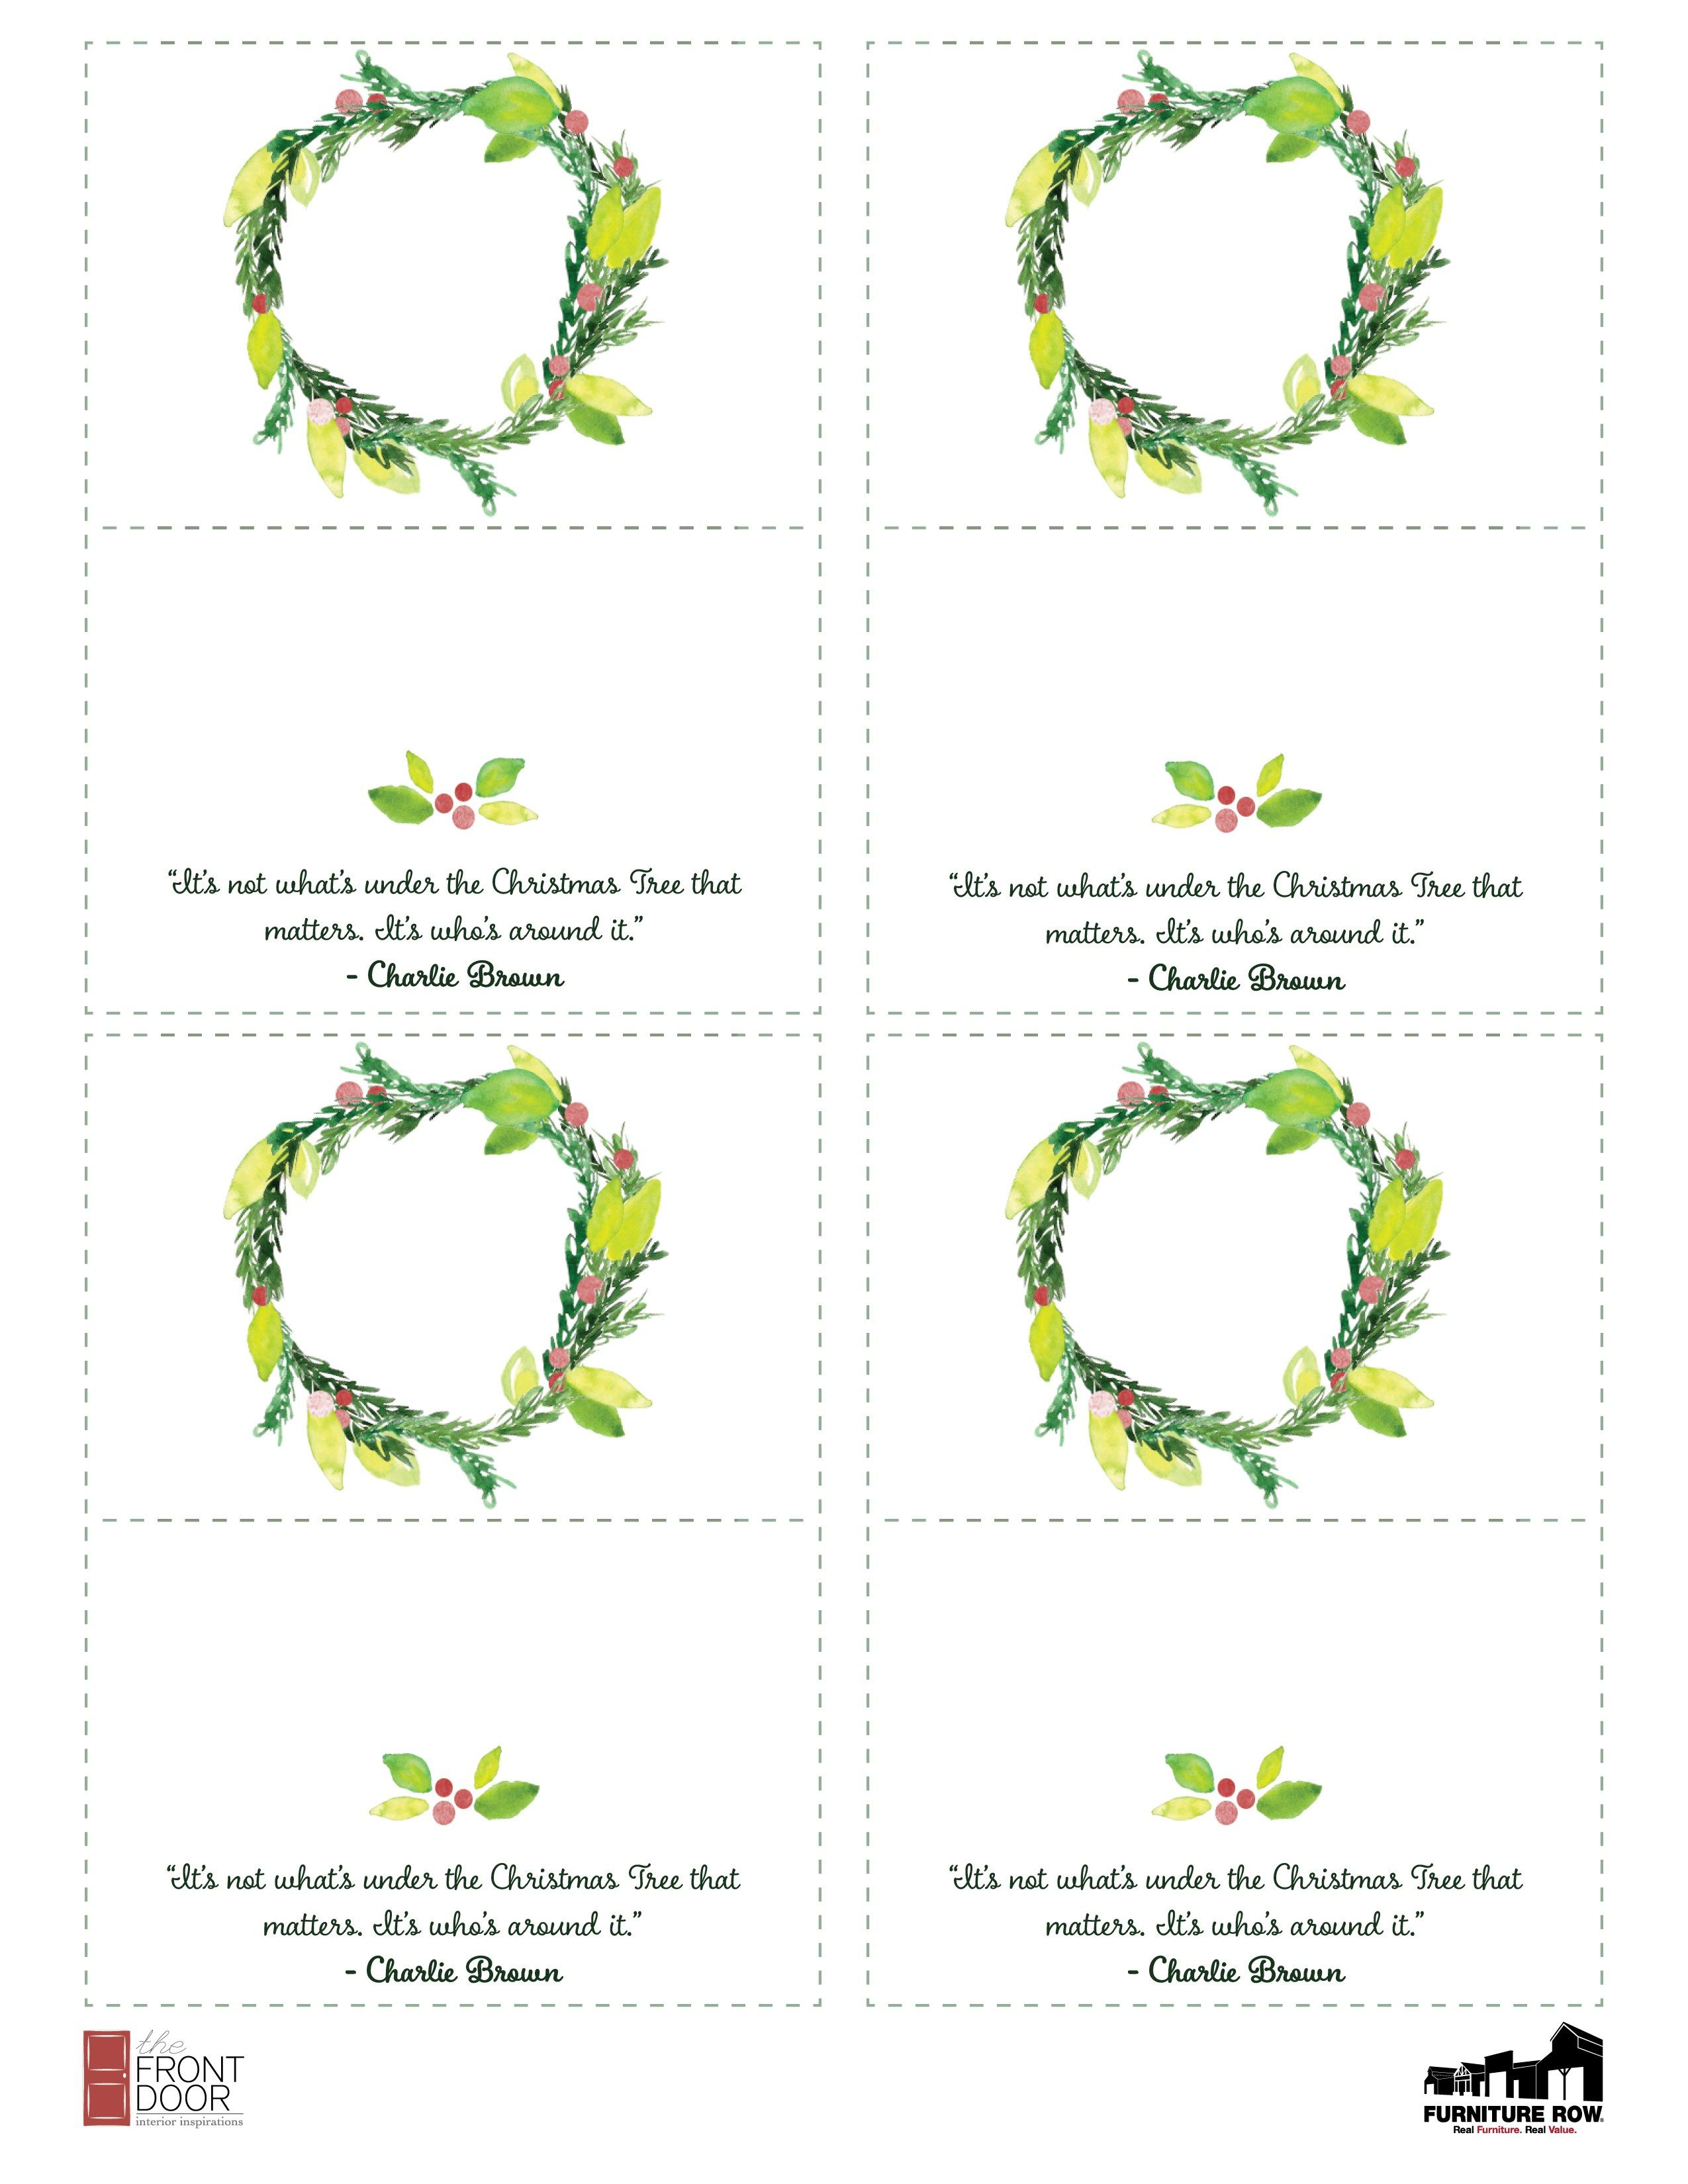 Printable Christmas Place Name Cards For The Table   Holiday - Christmas Table Name Cards Free Printable